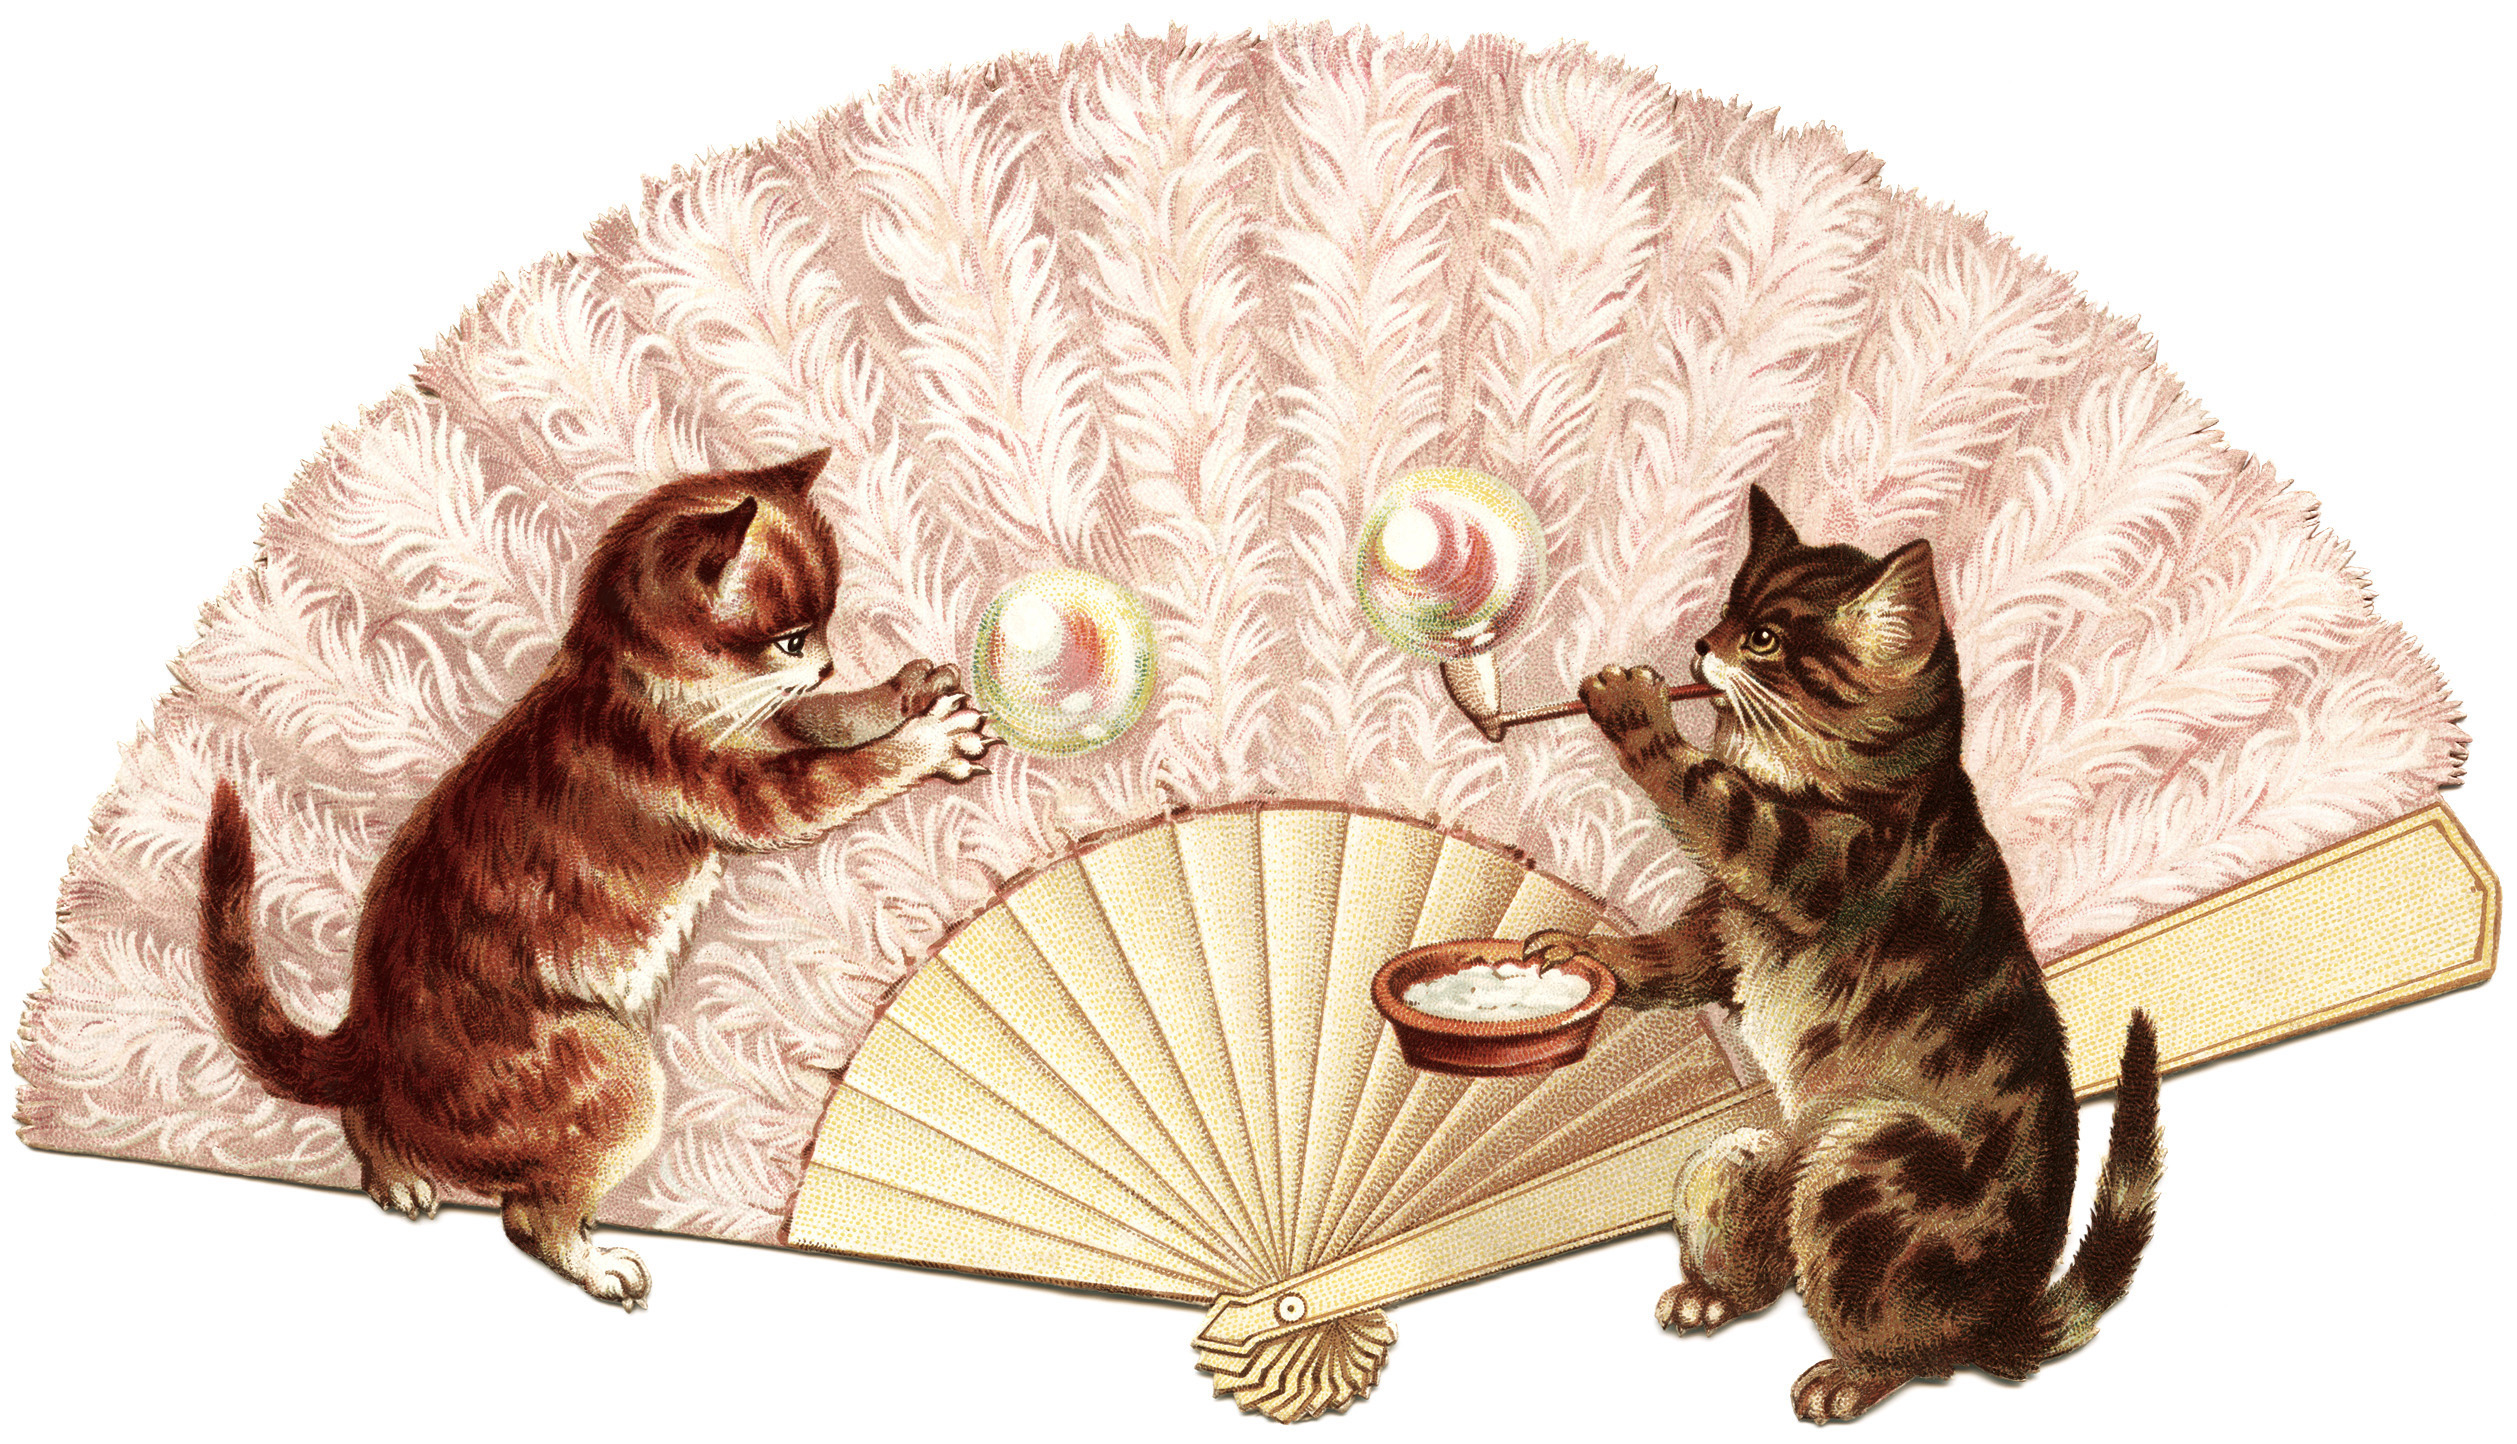 Victorian clip art, cat blowing bubbles, kitten bubble clipart, vintage kittens at play illustration, whimisical animal graphics, vintage cat image